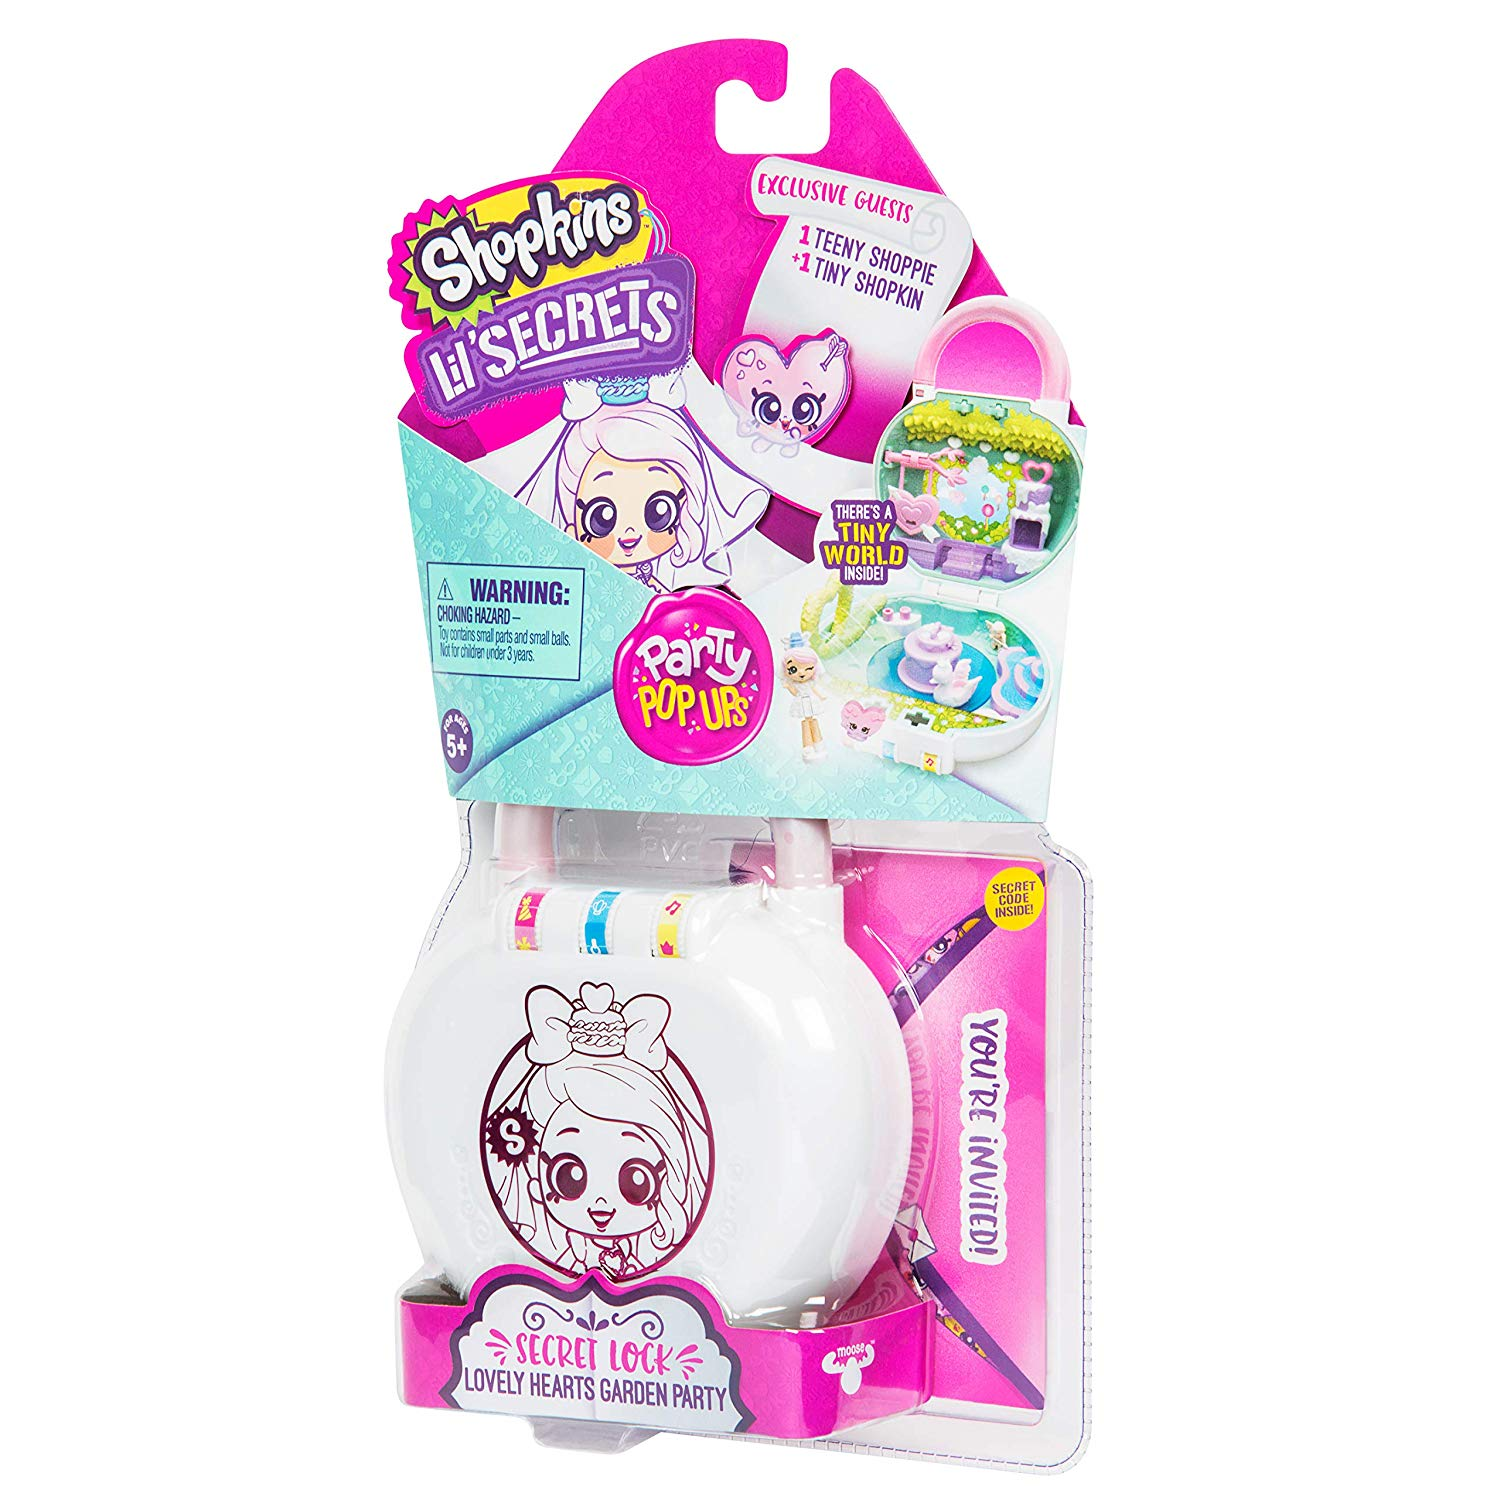 MO120572240000Shopkins Lil Secrets S2 Playset Lovely (5)